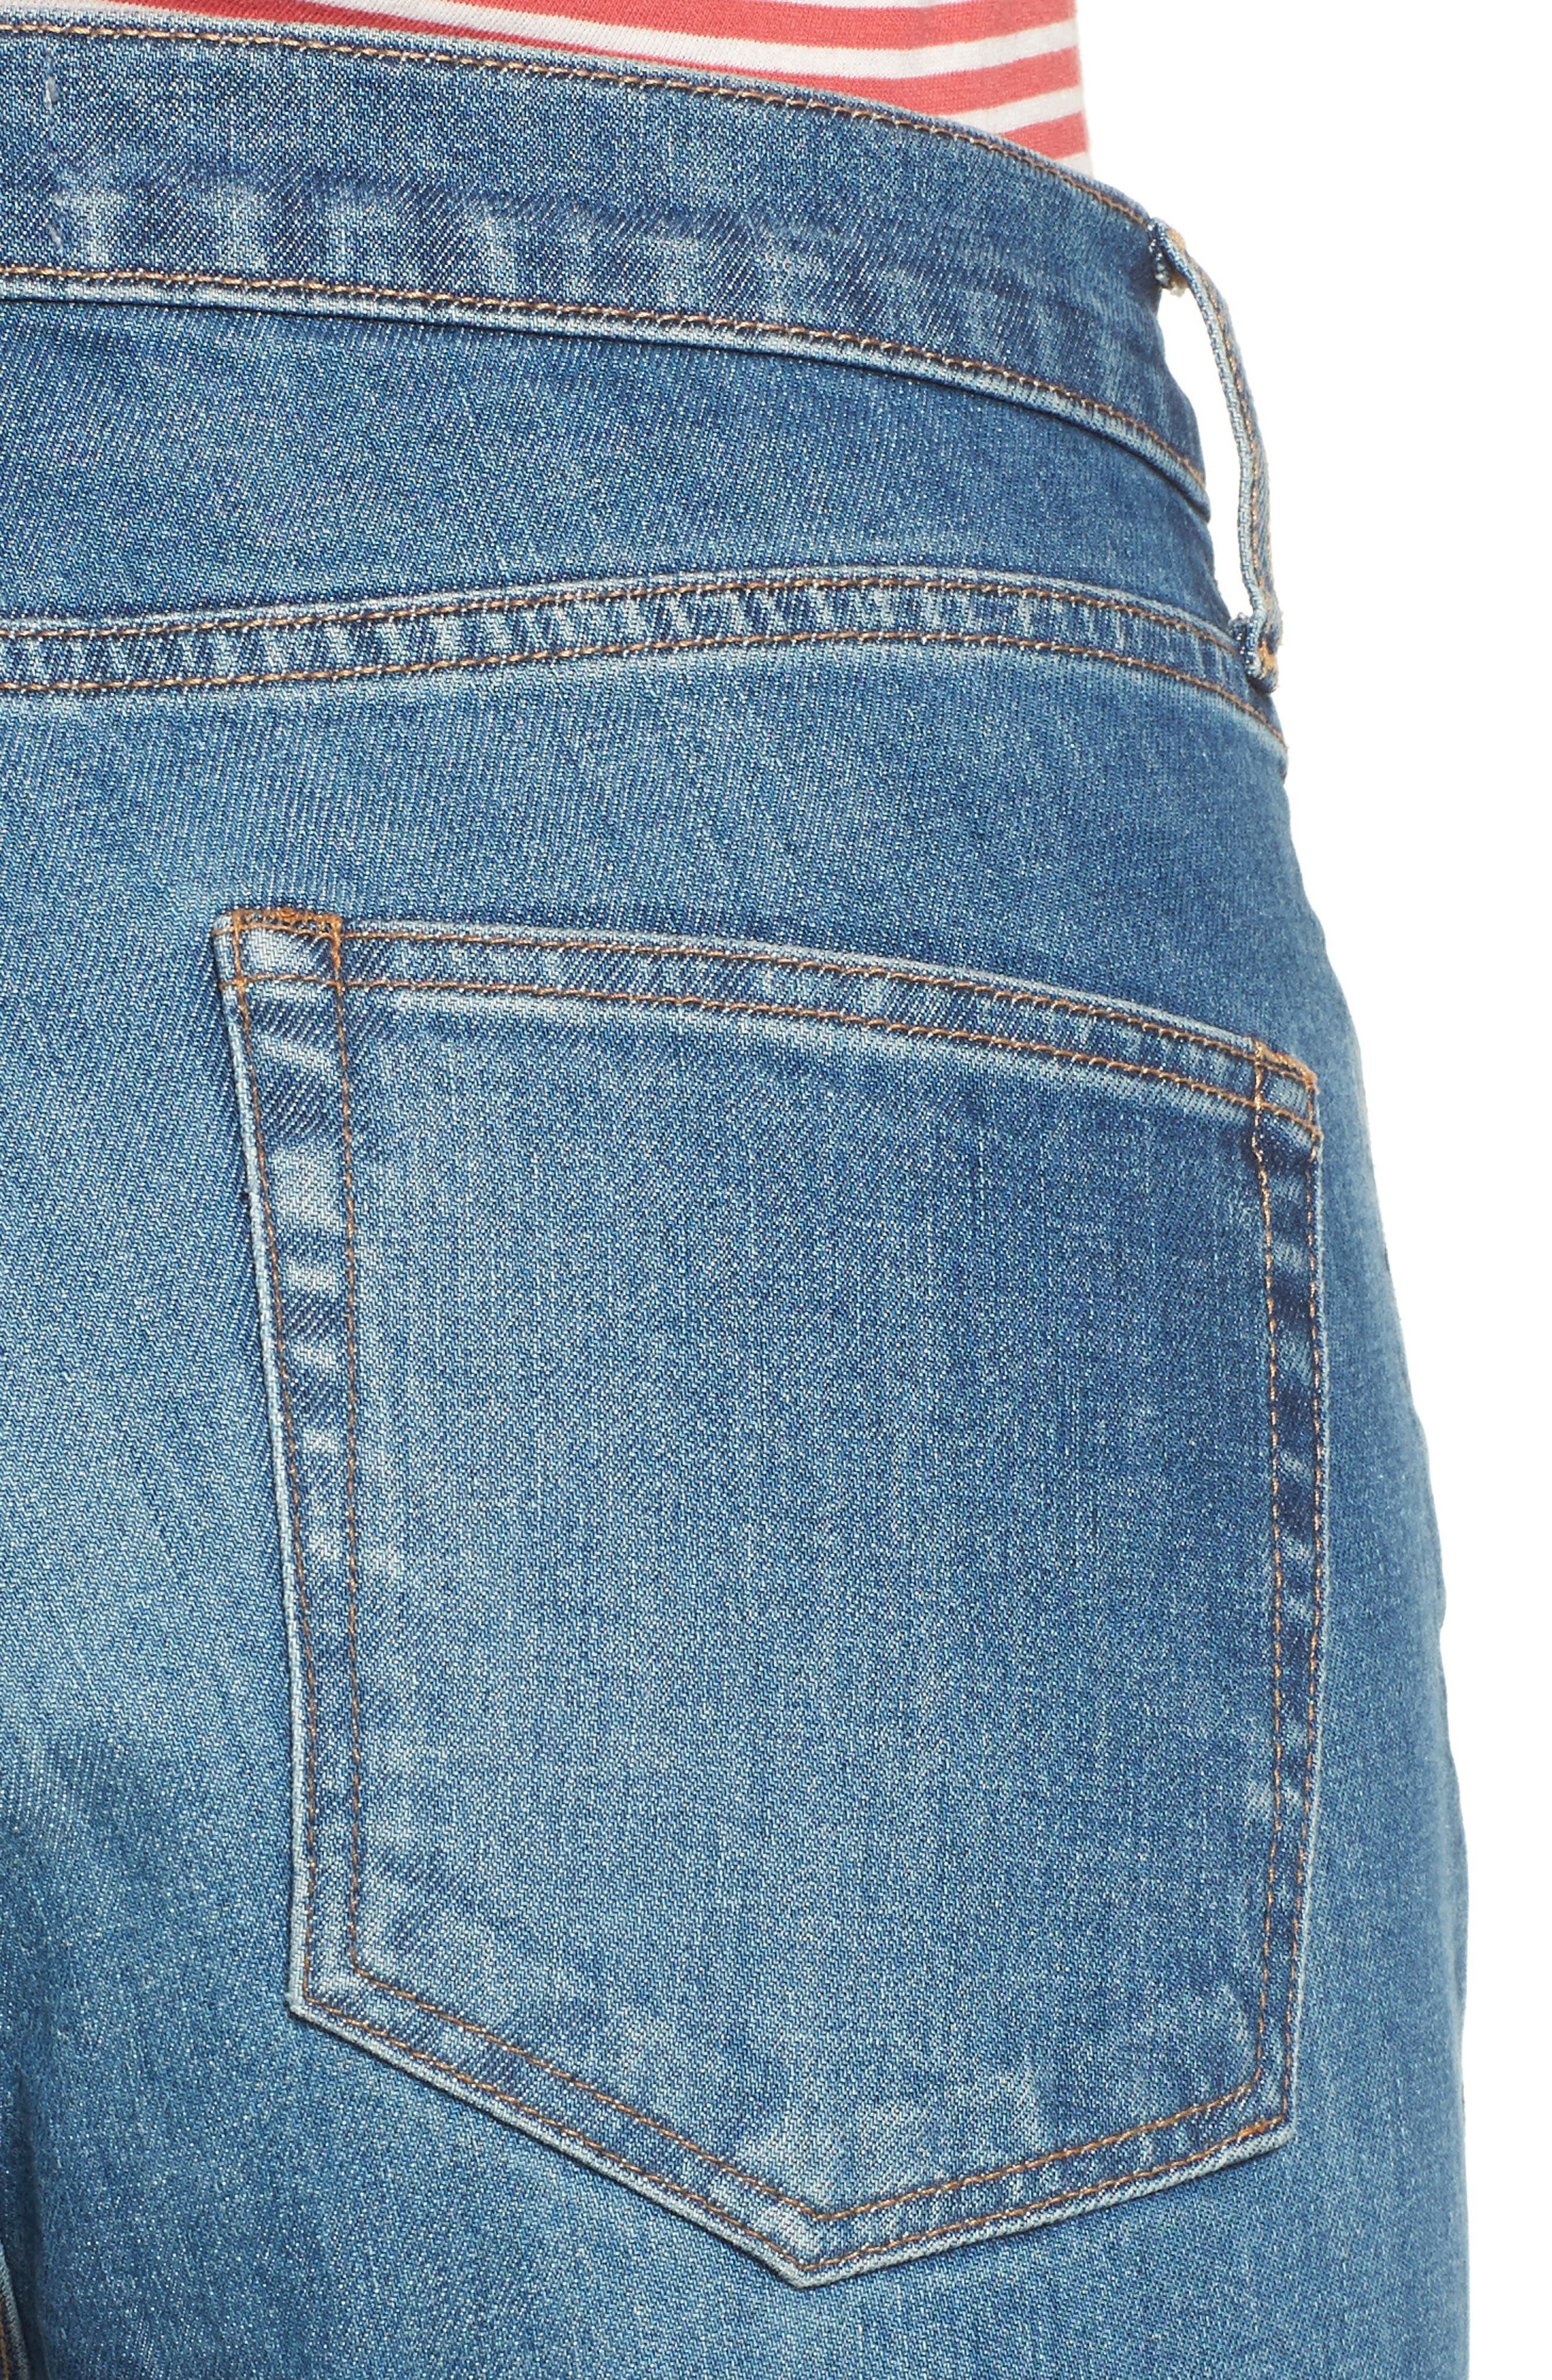 Alternate Image 4  - Everlane The High Rise Skinny Ankle Jeans